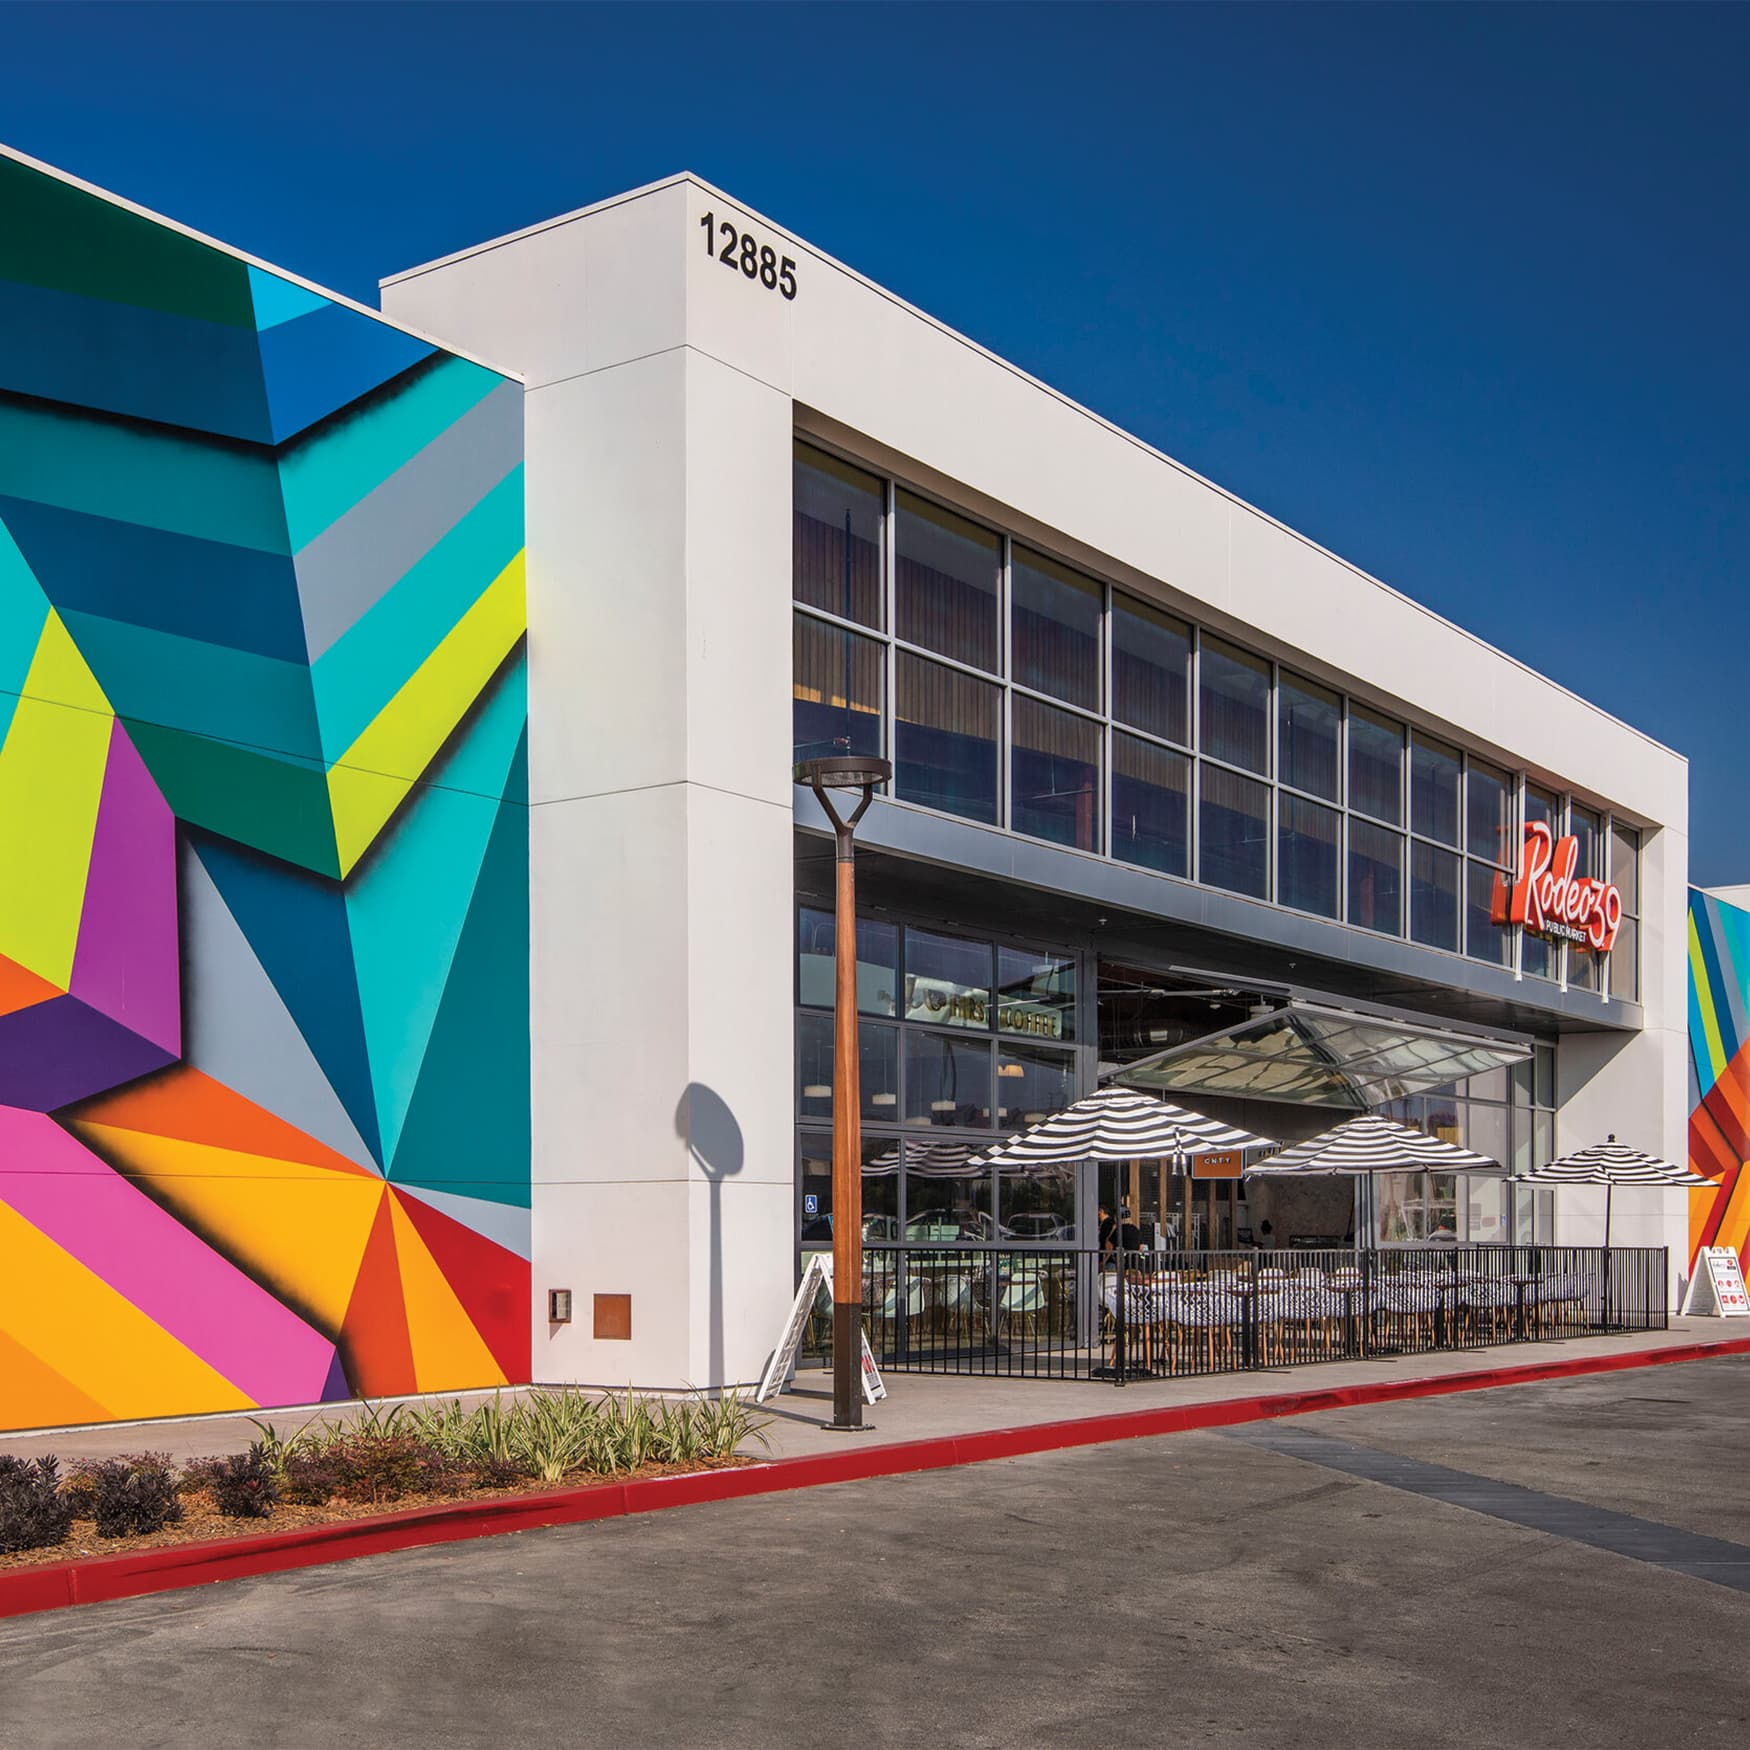 Colorful murals designed in collaboration with QBIK for Rodeo39